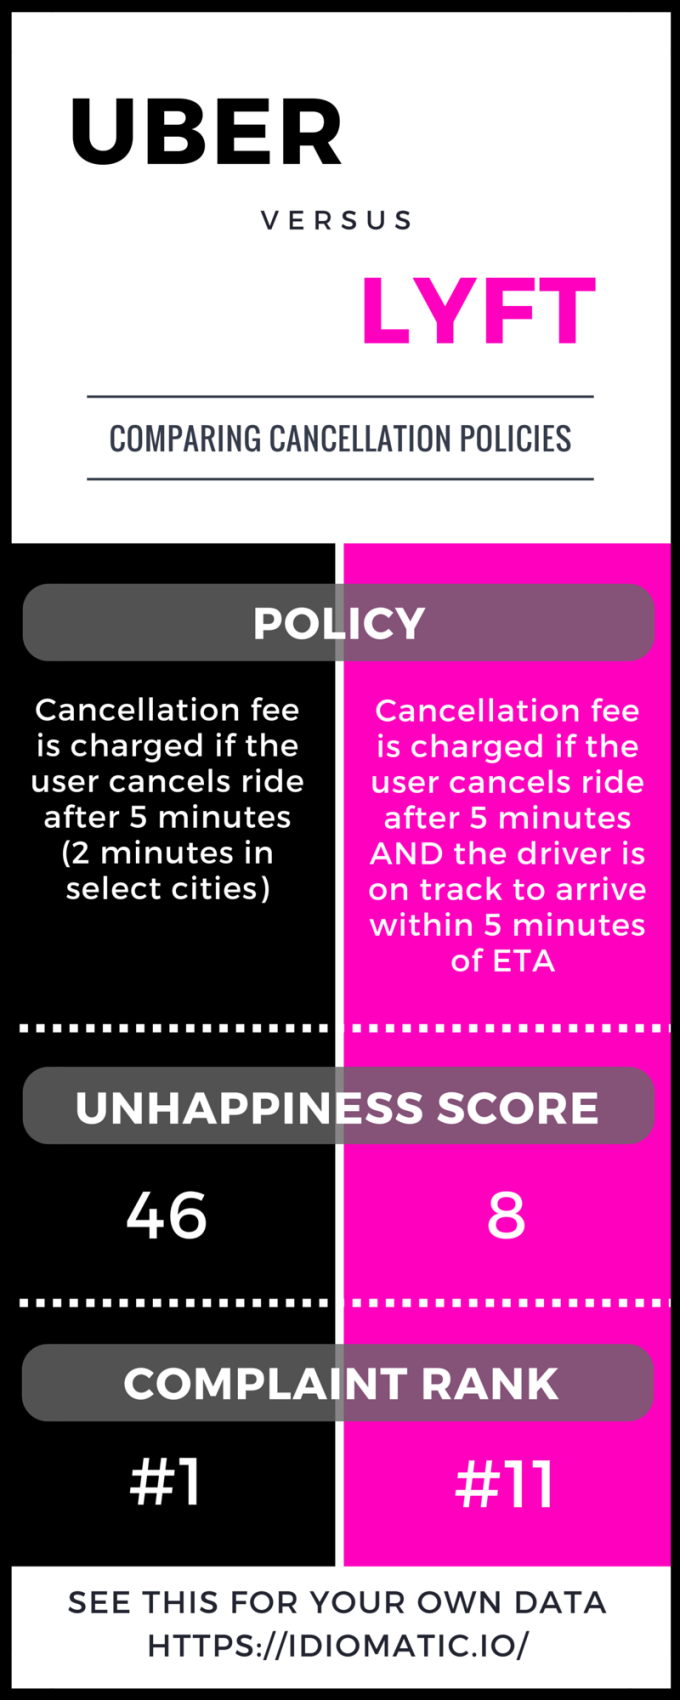 In The Us Uber S Main Rival Is Lyft So Idiomatic Yzed Reviews As Well To See How A Problem Cancellation Fees Are And Results